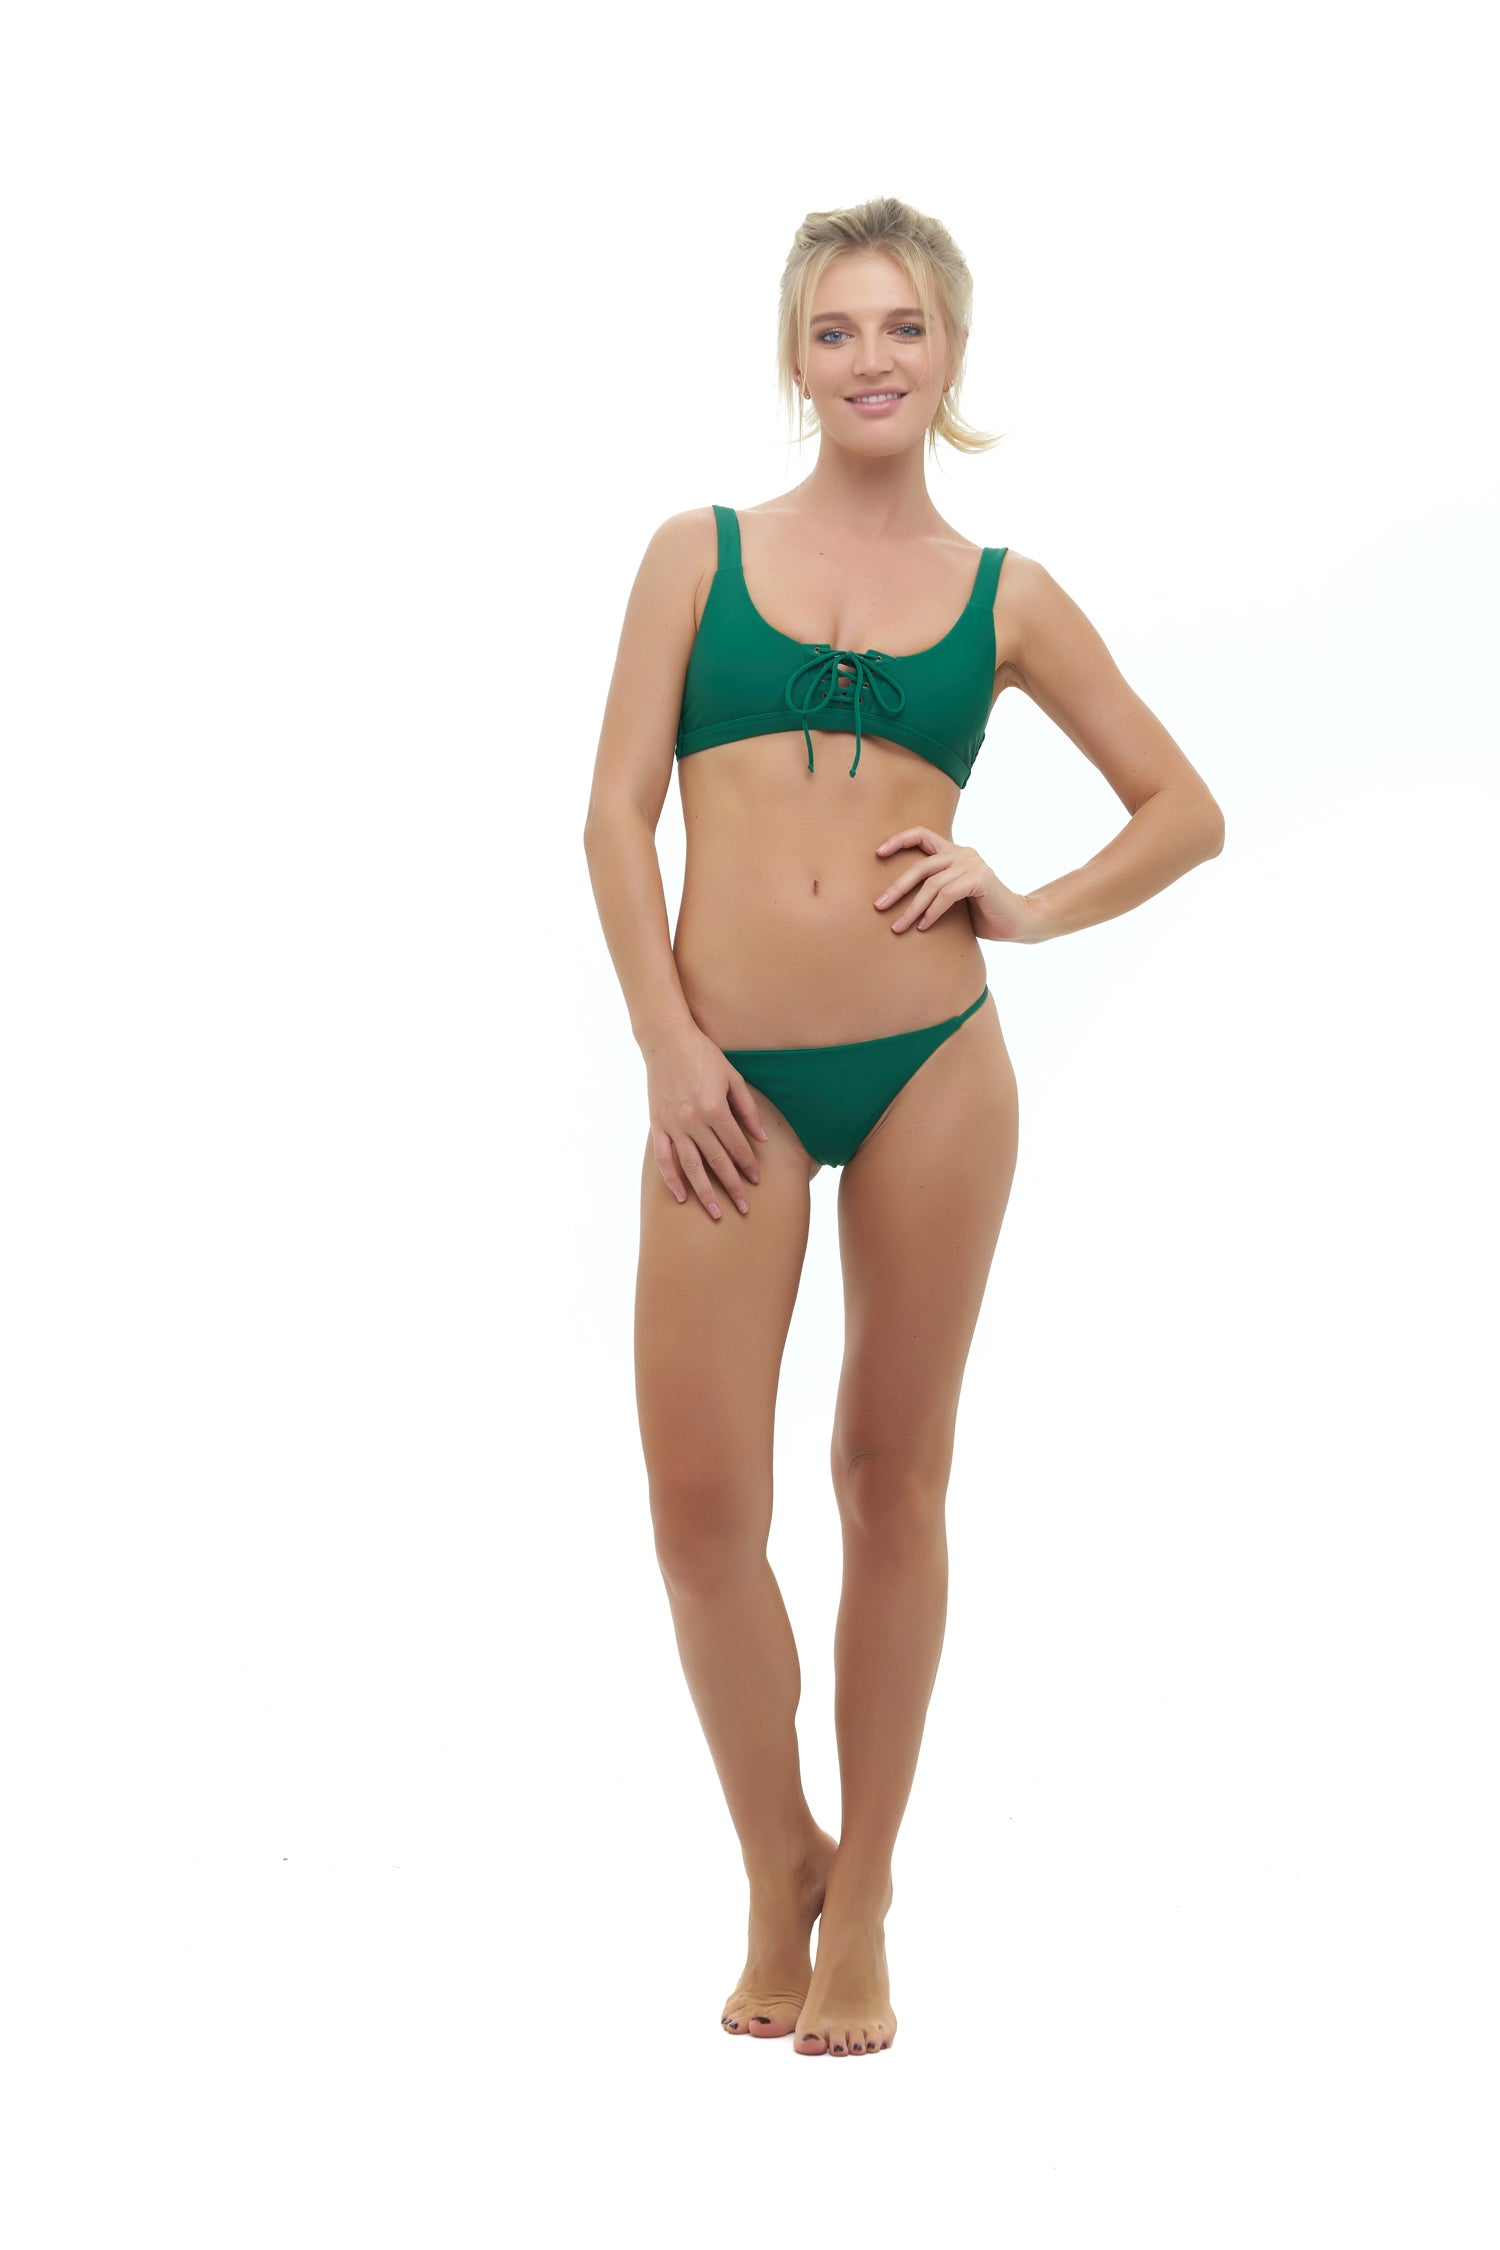 Storm Swimwear - Corsica - Lace Up bikini top in Palm Green